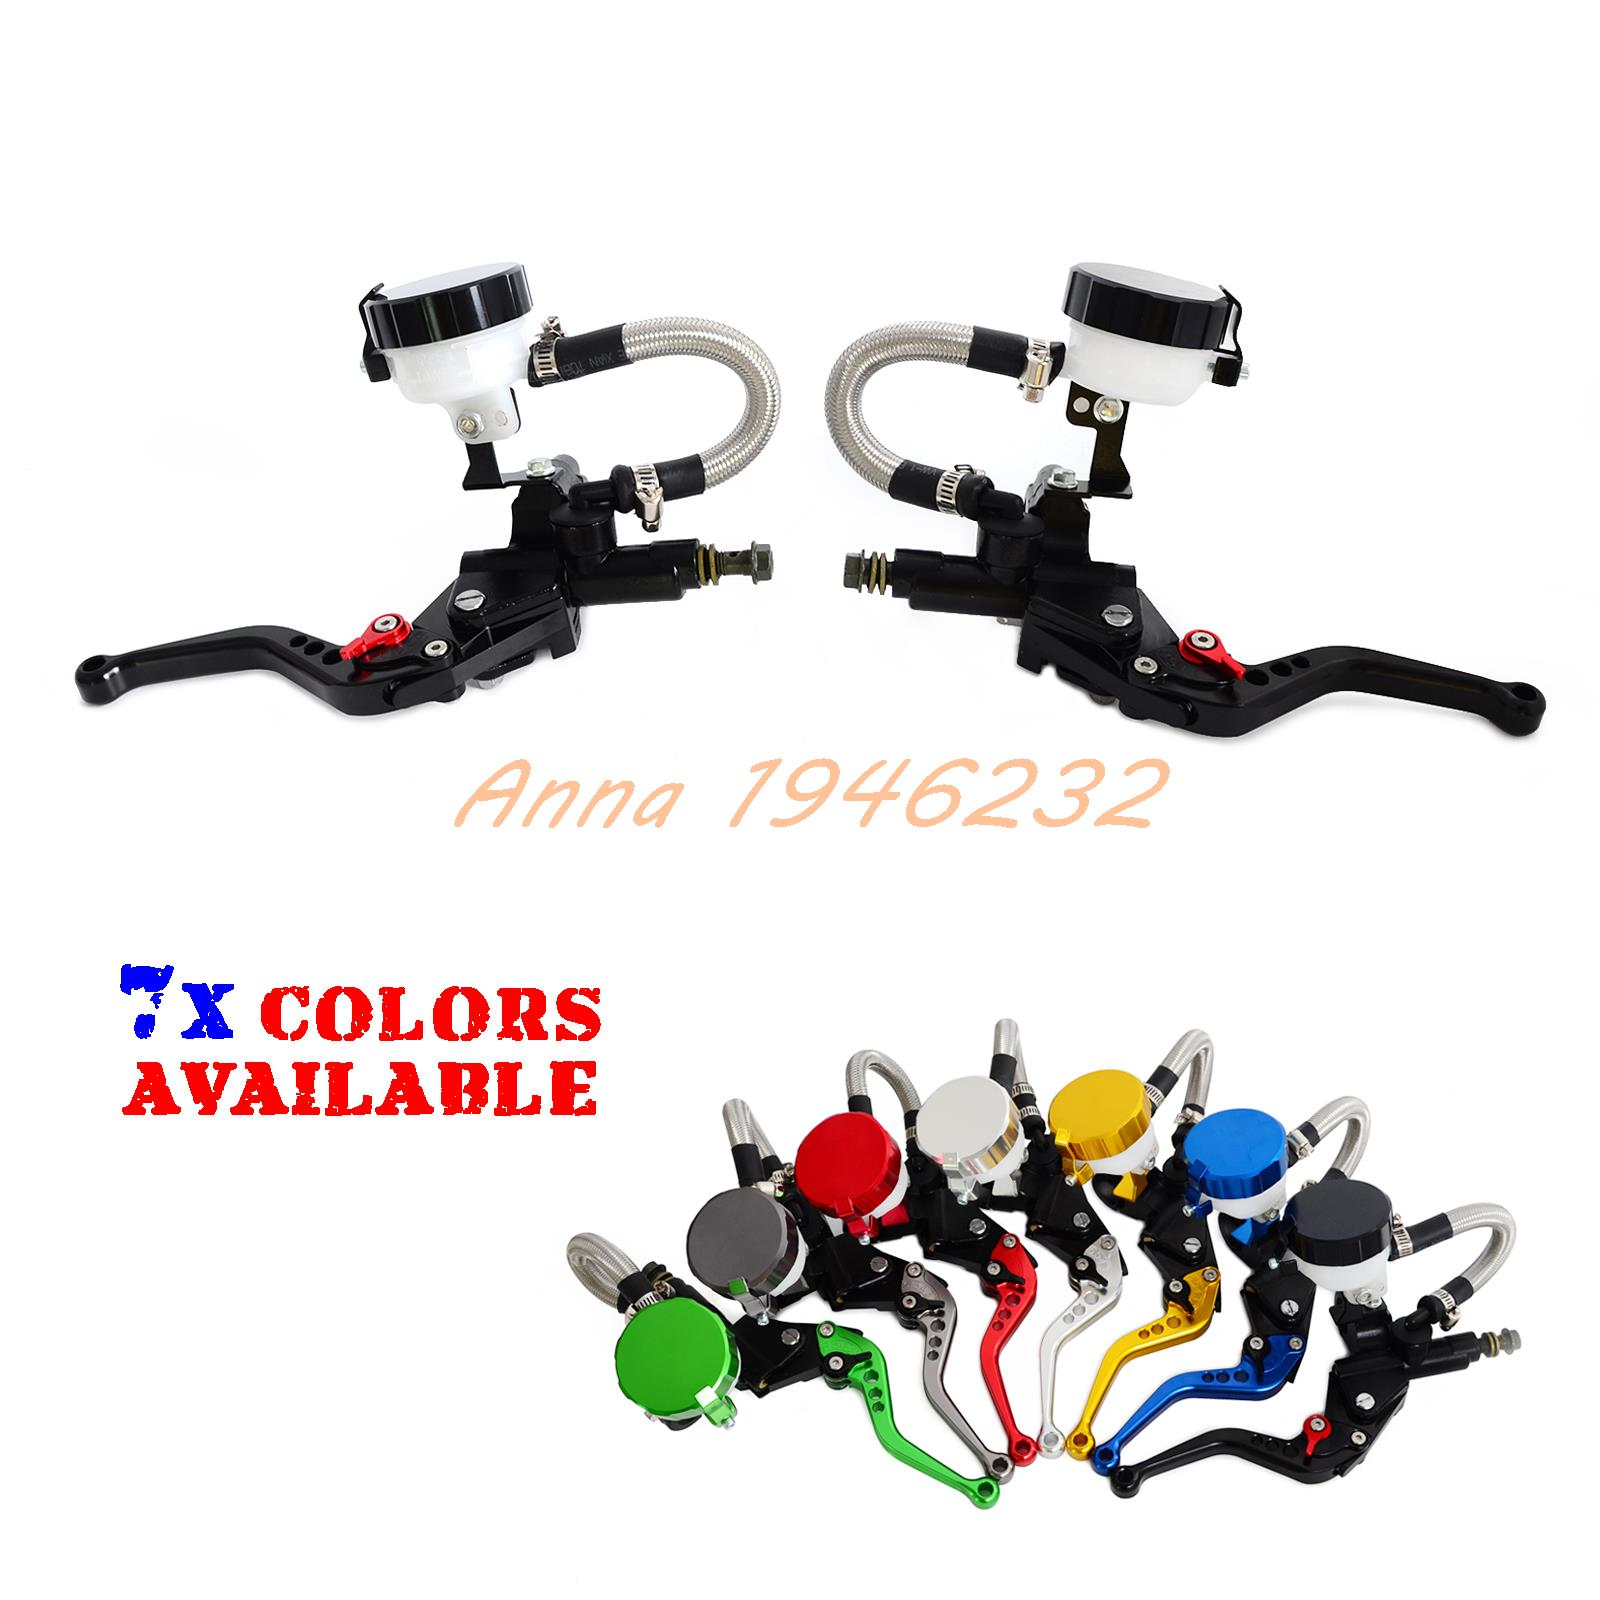 Universal Motorcycle 7/8Clutch Brake Levers Master Cylinder Oil Fluid Reservoir Motocross Enduro Supermoto Dirt Bike Motorcycle<br>